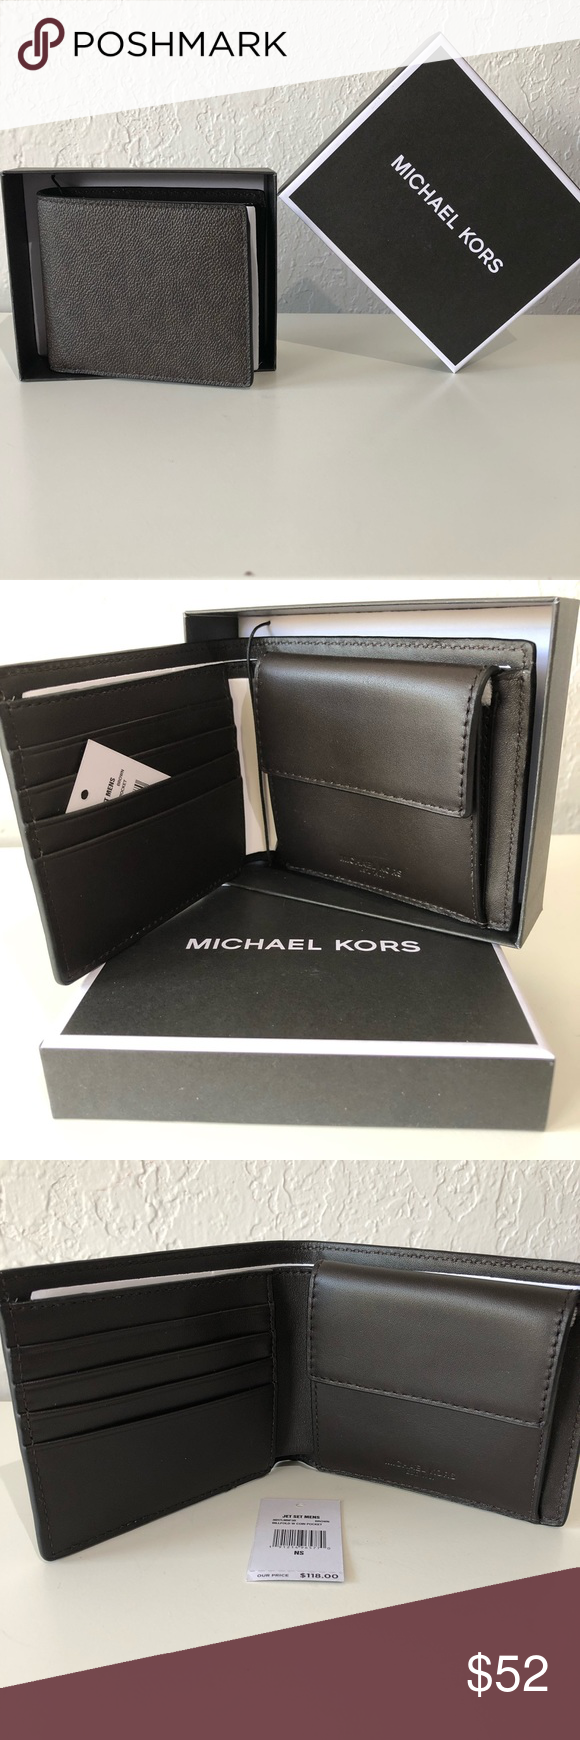 f9c946658f0c Michael Kors Men s Wallet Michael Kors Jet Set Mens